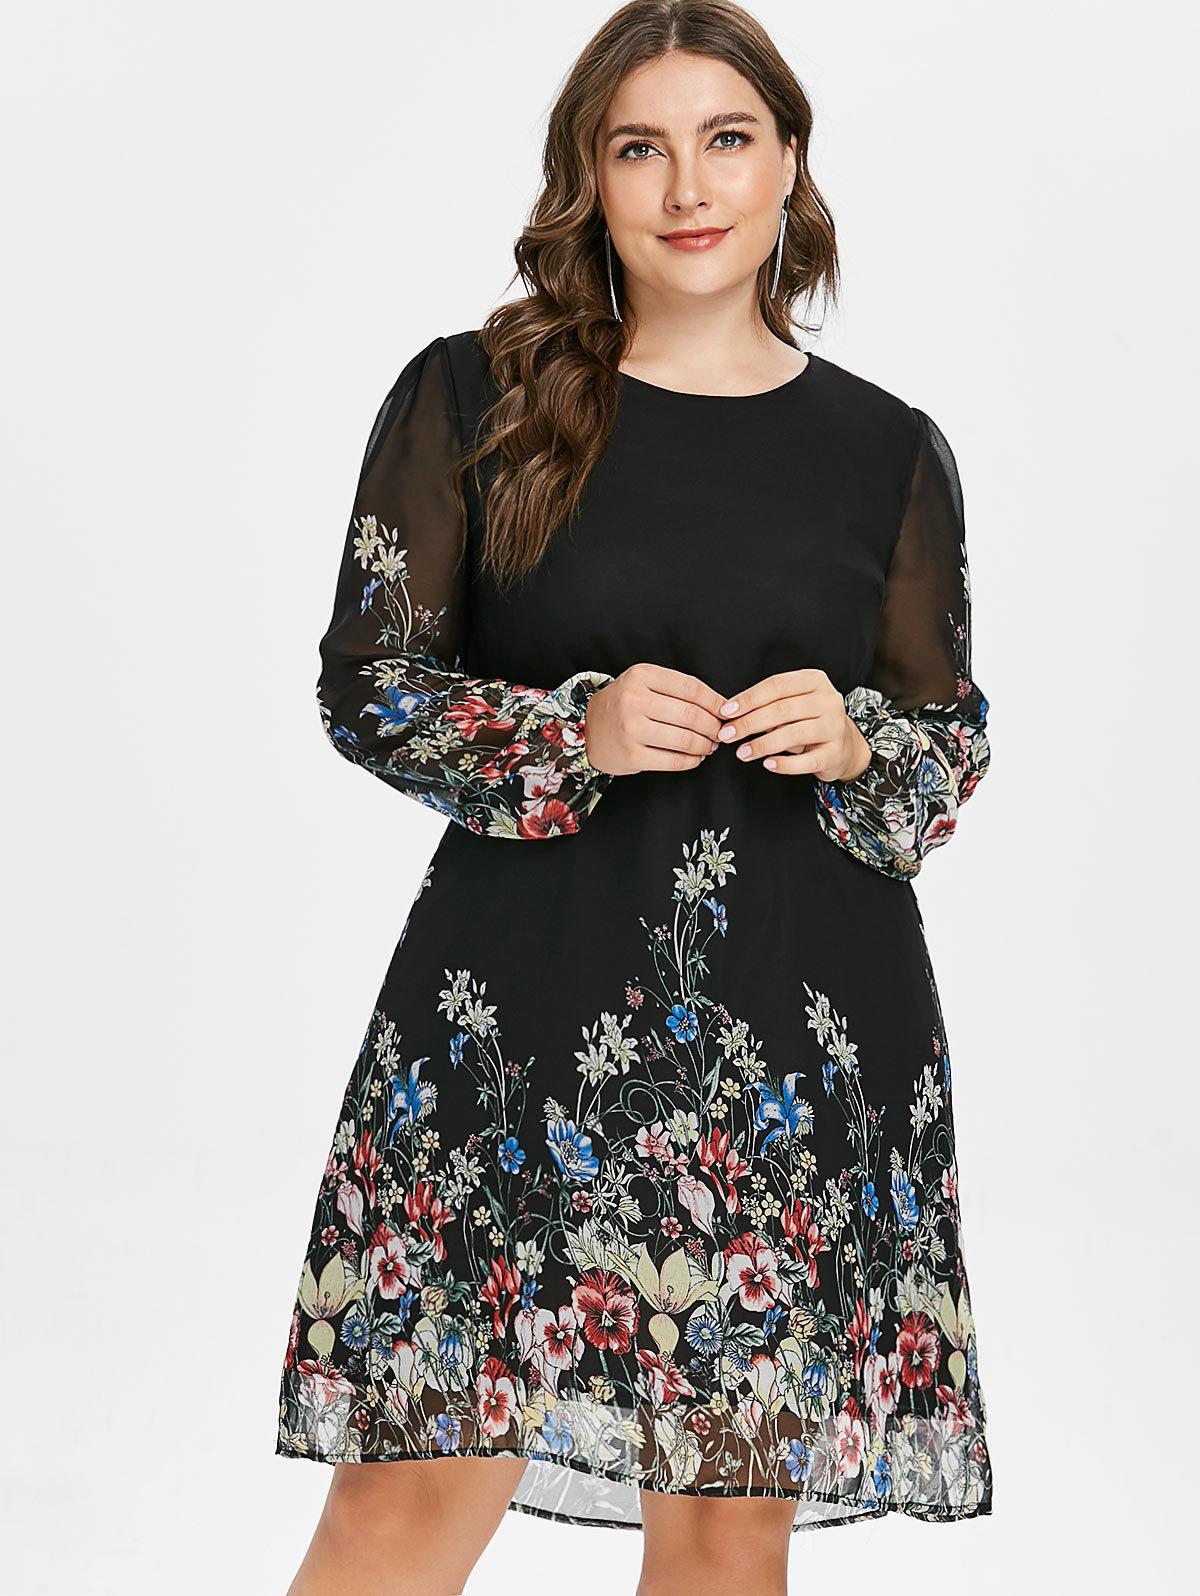 fd42d67ec Women Dresses Plus Size Floral Print Tunic Women Dress Long Sleeve Autumn  Elegant Tribal Flower Print Vocation Shirt Dress Chiffon 5xl Party Dress  Sleeves ...